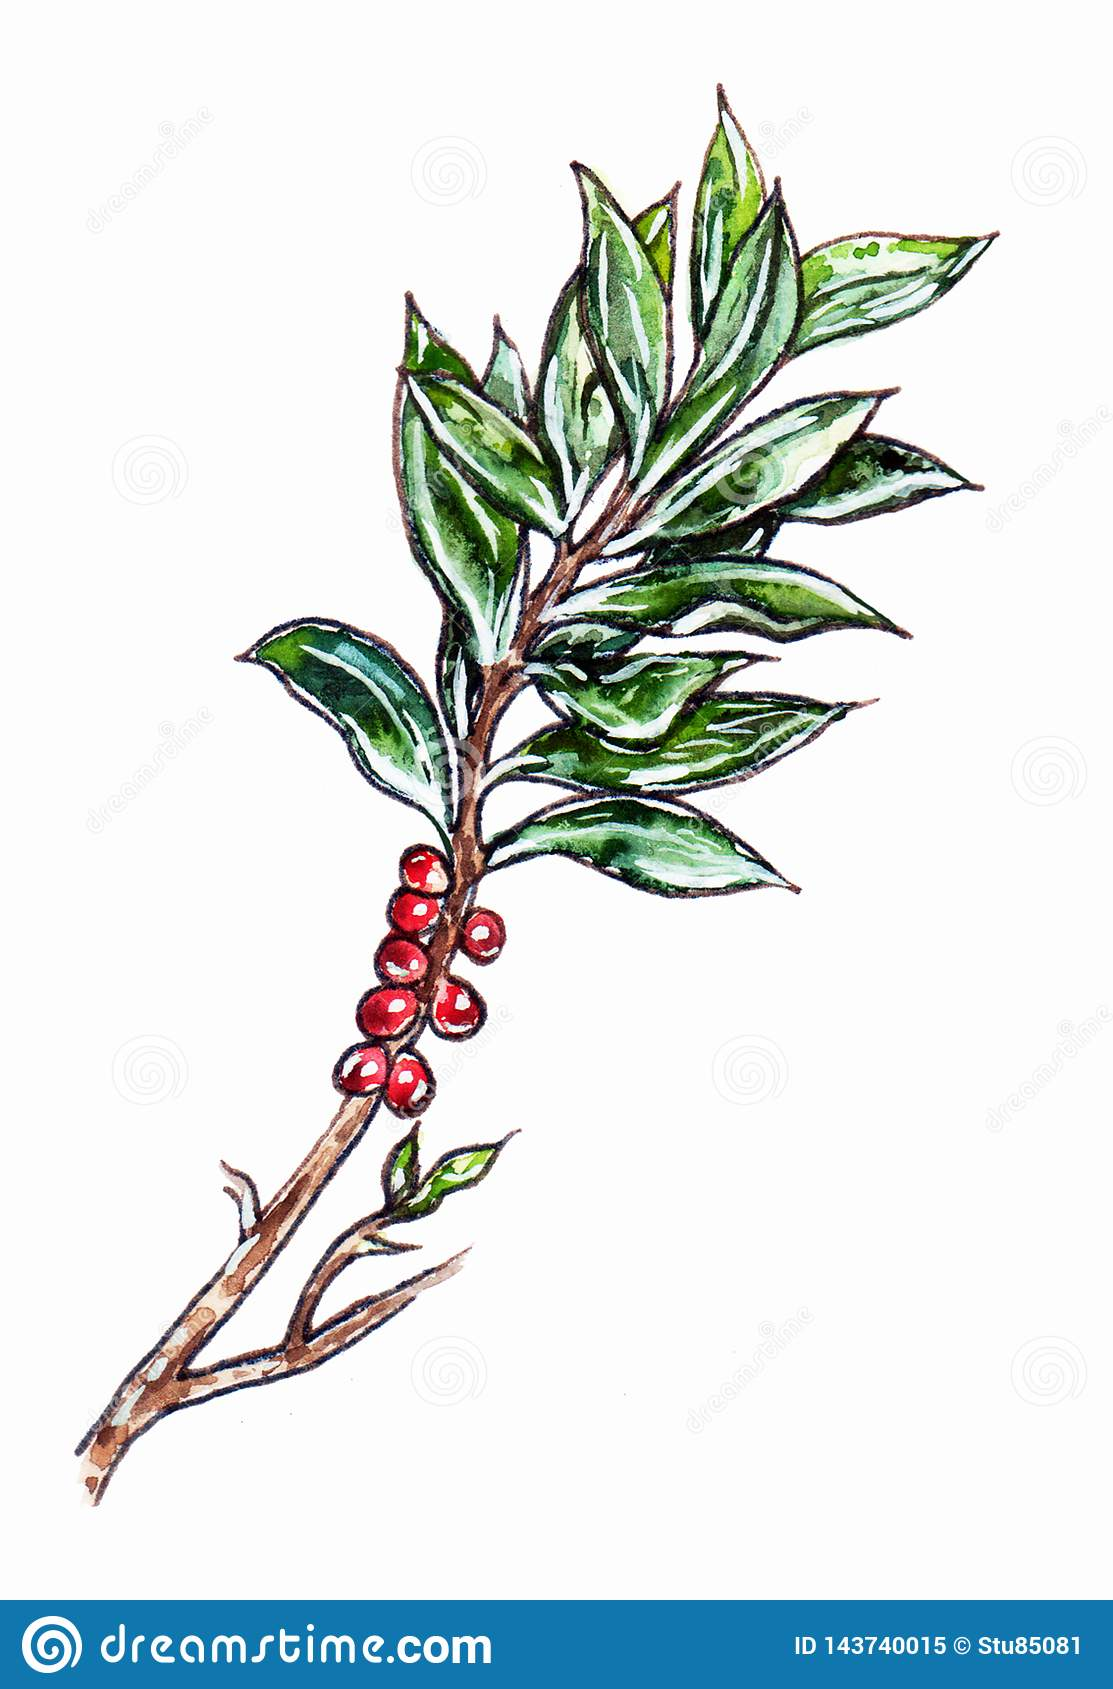 Hand drawn branch with green leaves and red berries